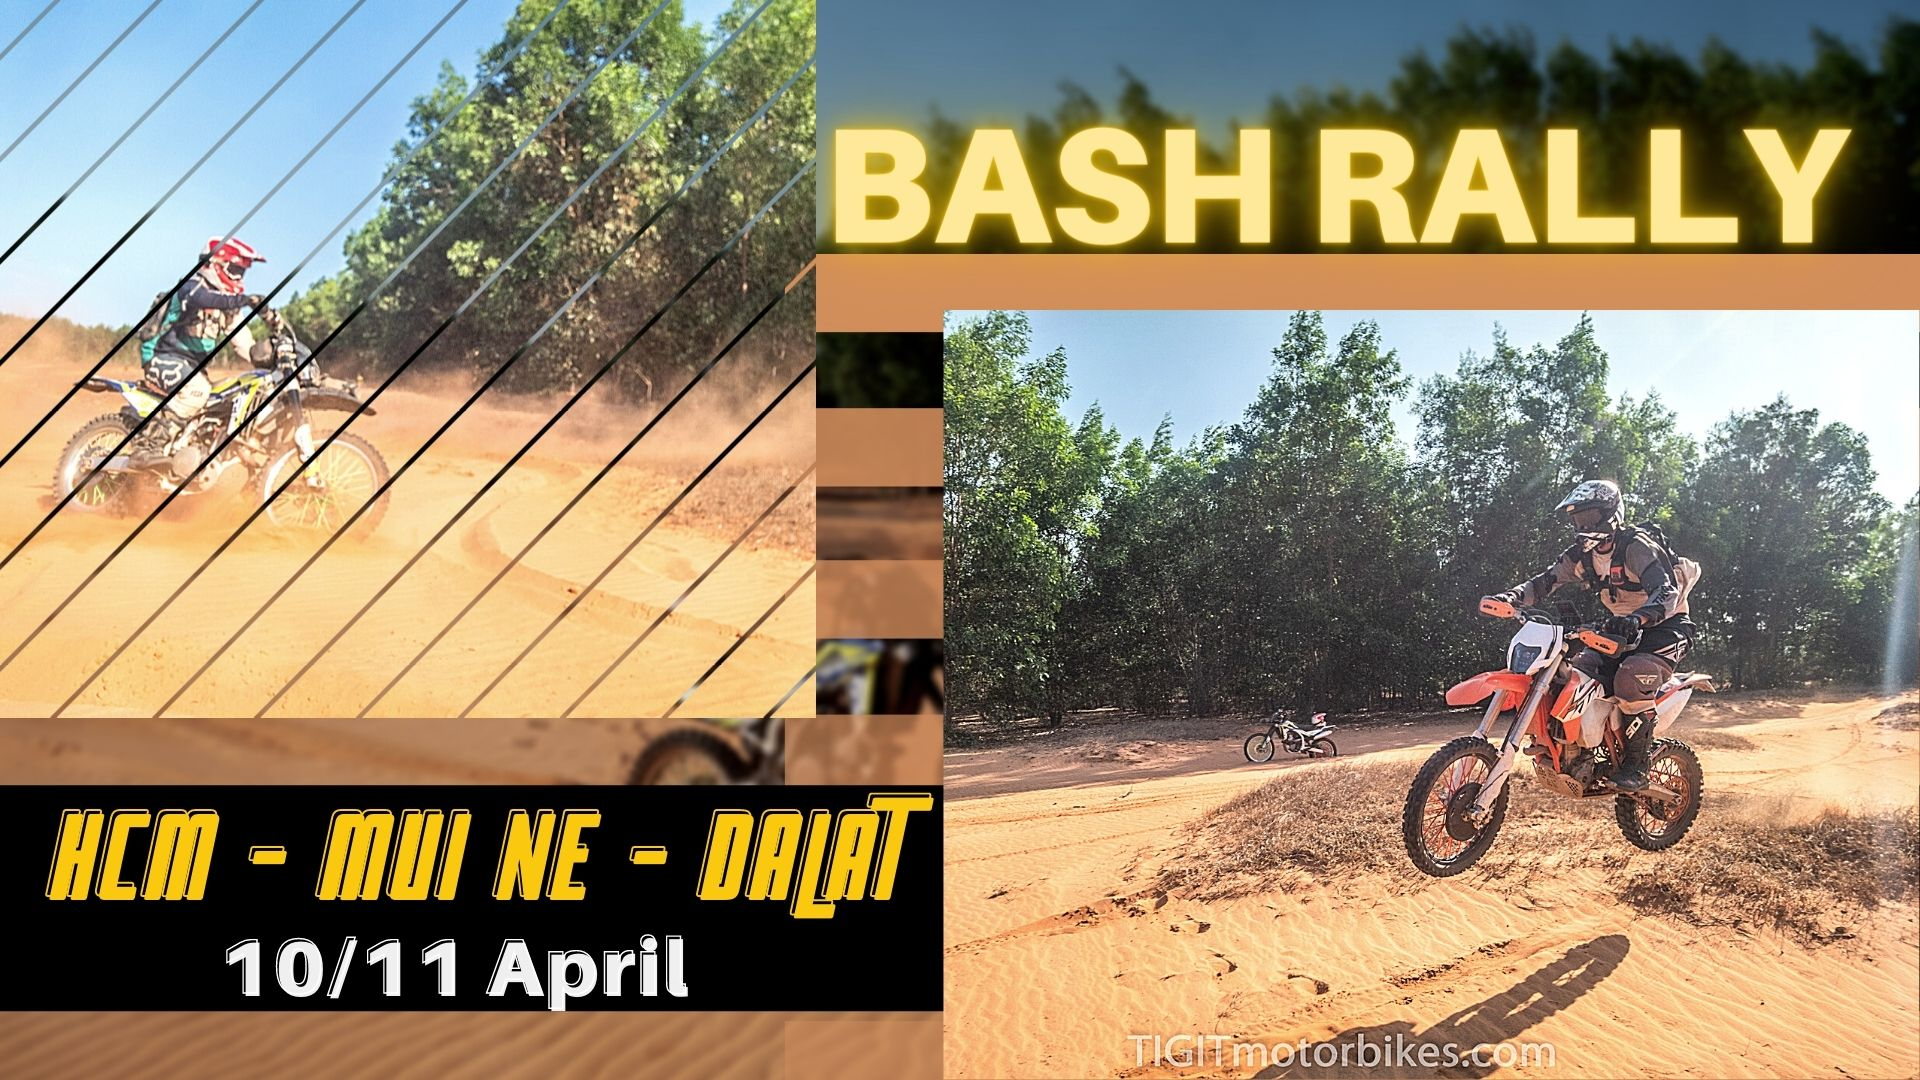 Bash Rallies HCM, Mui Ne Dalat - 10/11 April